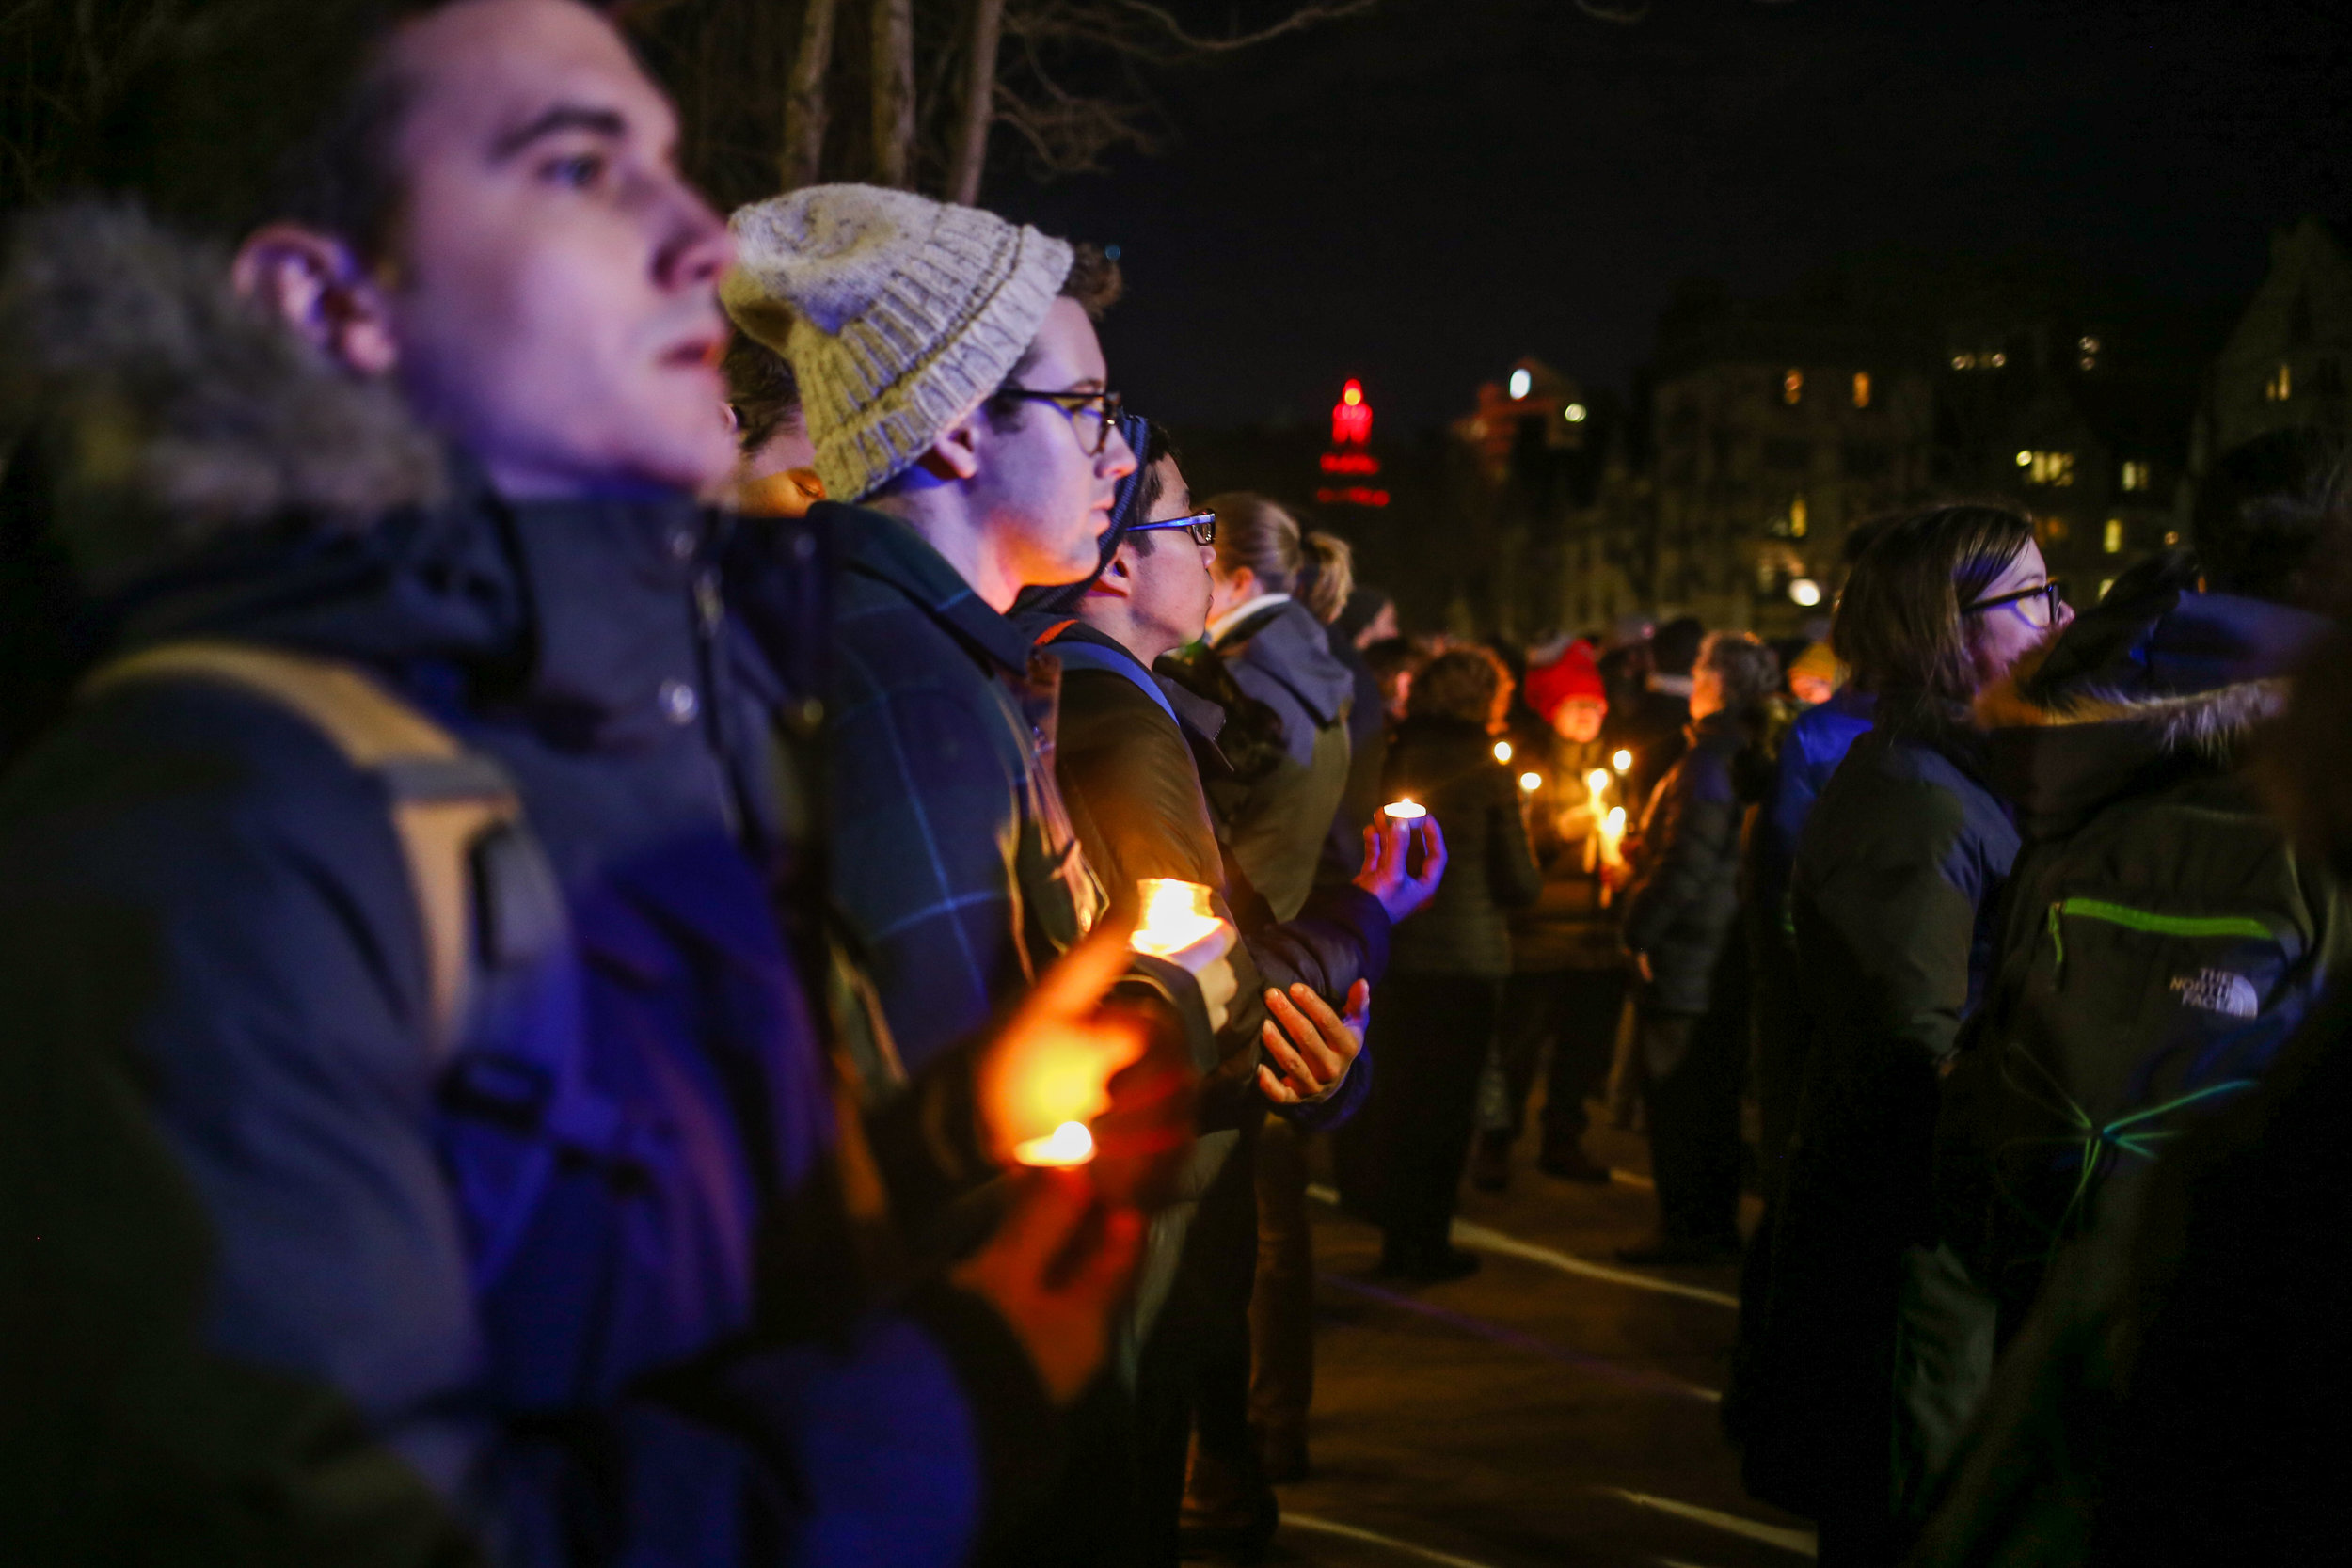 New Haven, Connecticut - January 29th, 2017: Vigil held for immigrants and refugees at Yale University